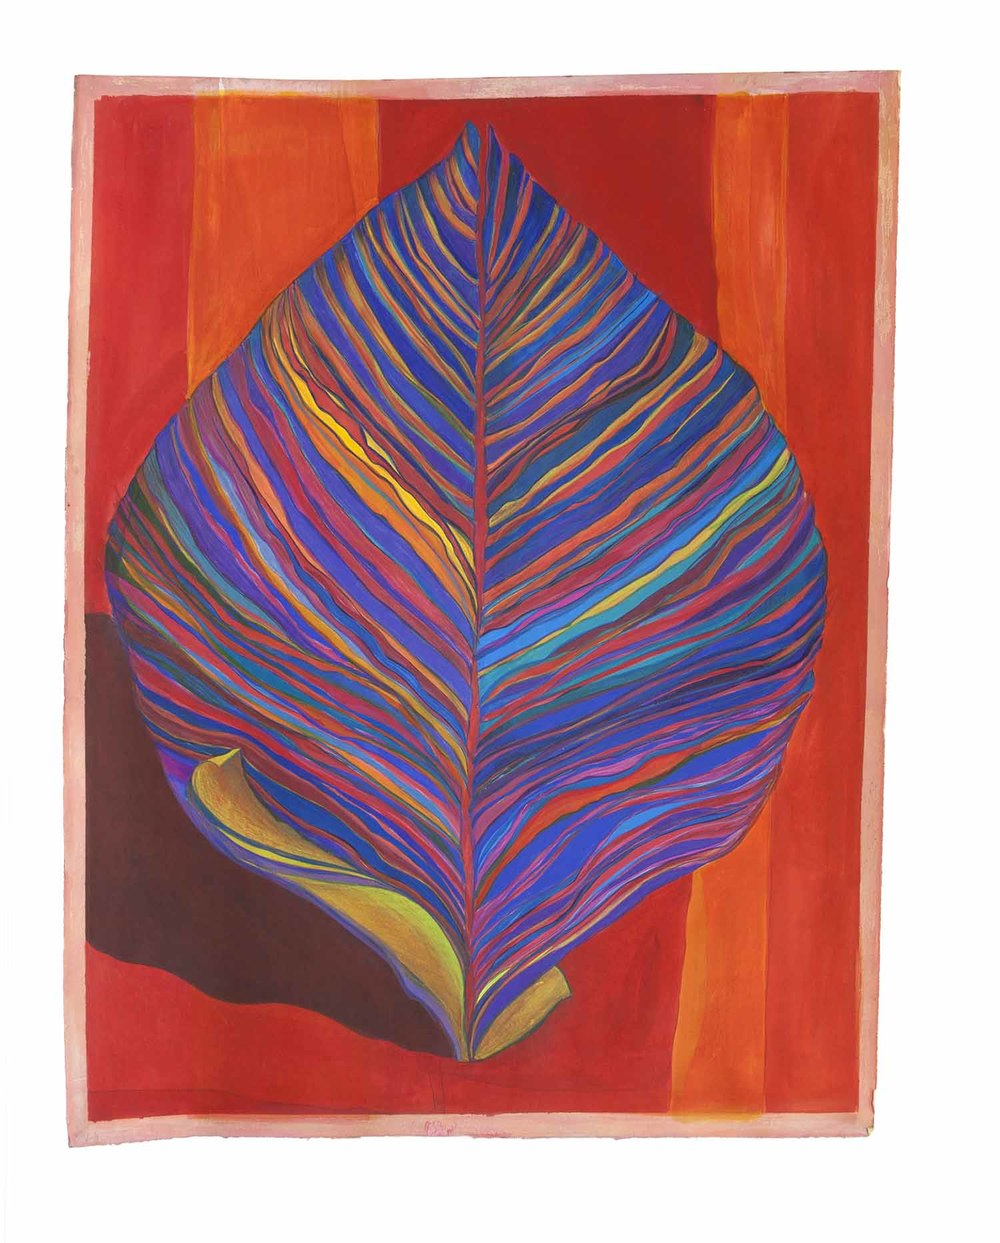 Leaf Form: Blue on Red